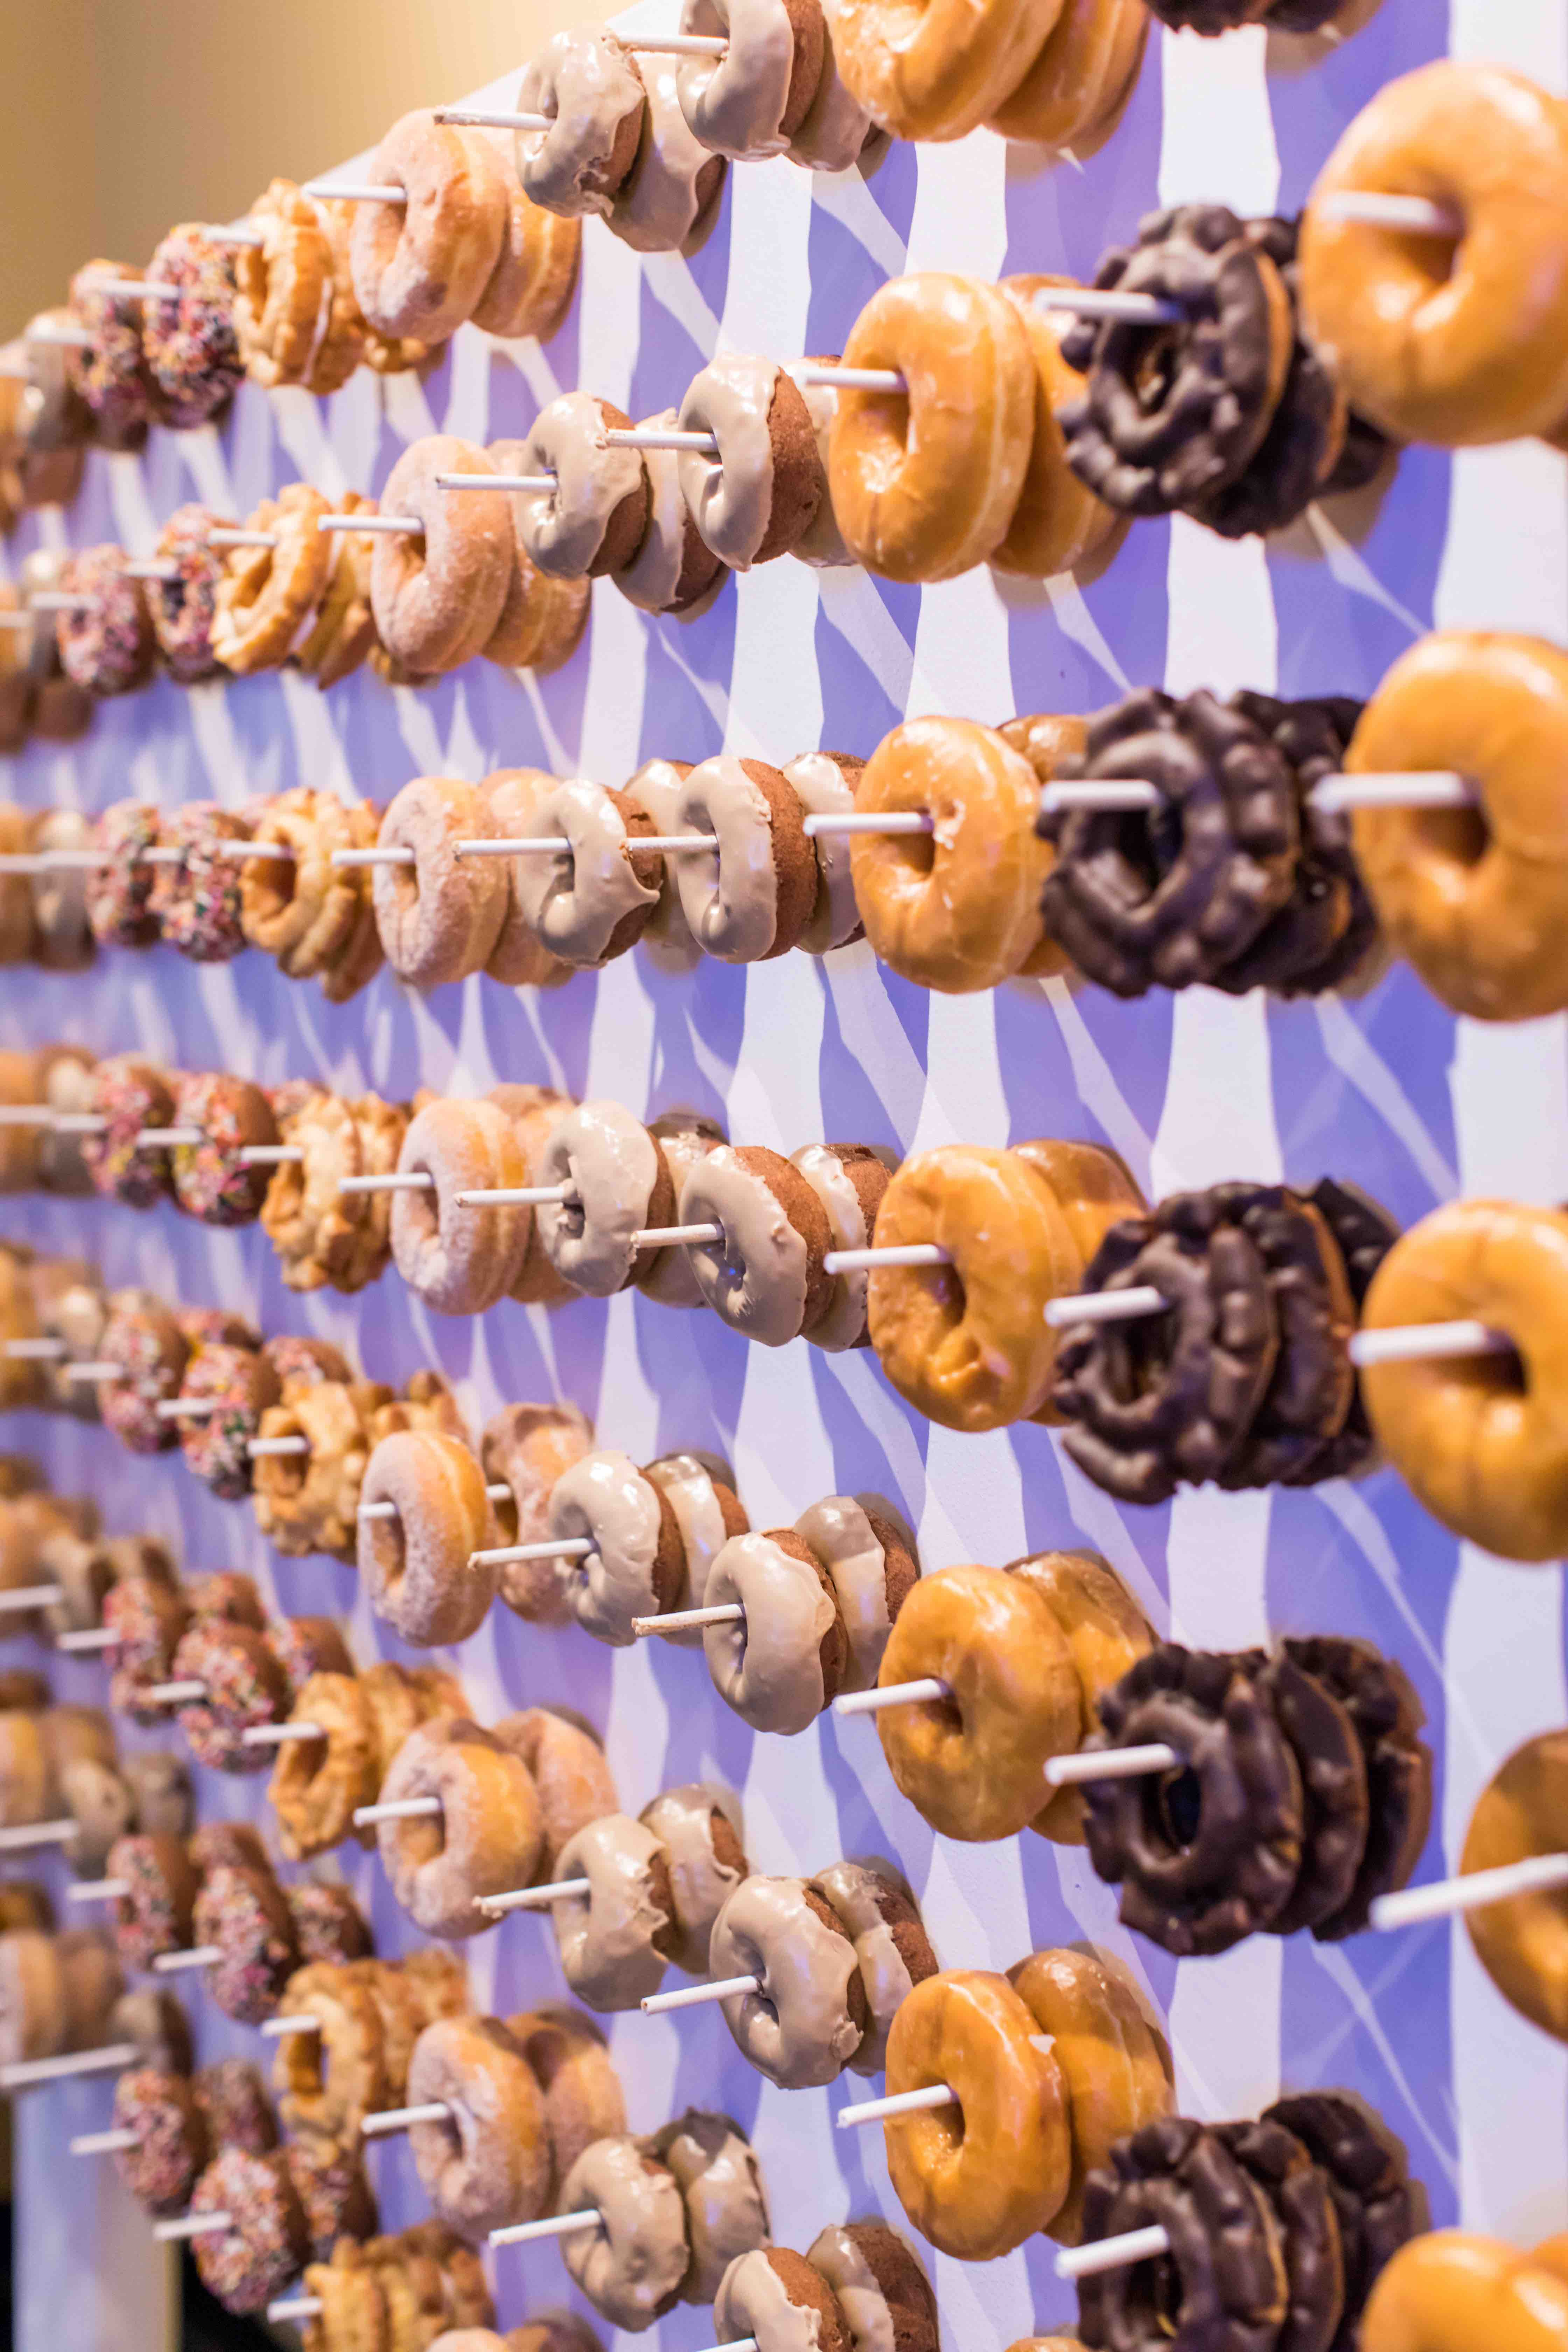 HOUSE OF BLUES DONUT WALL